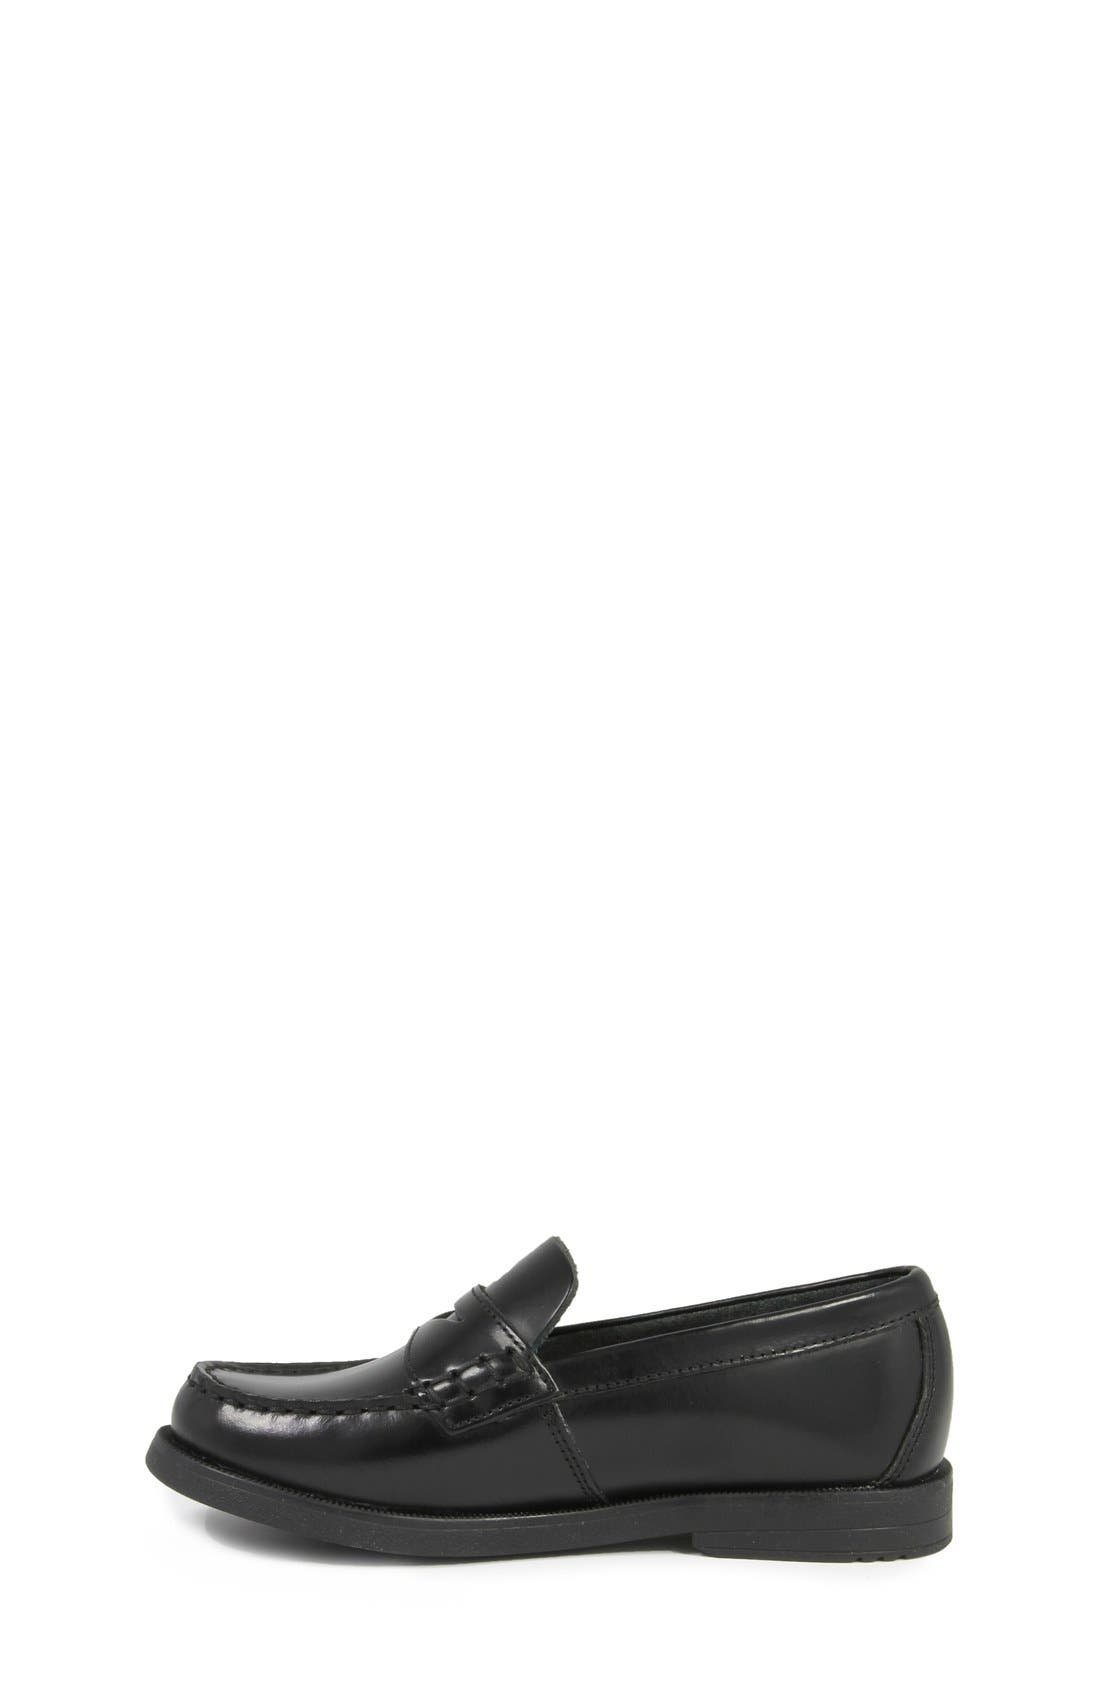 'Croquet' Penny Loafer,                             Alternate thumbnail 6, color,                             BLACK